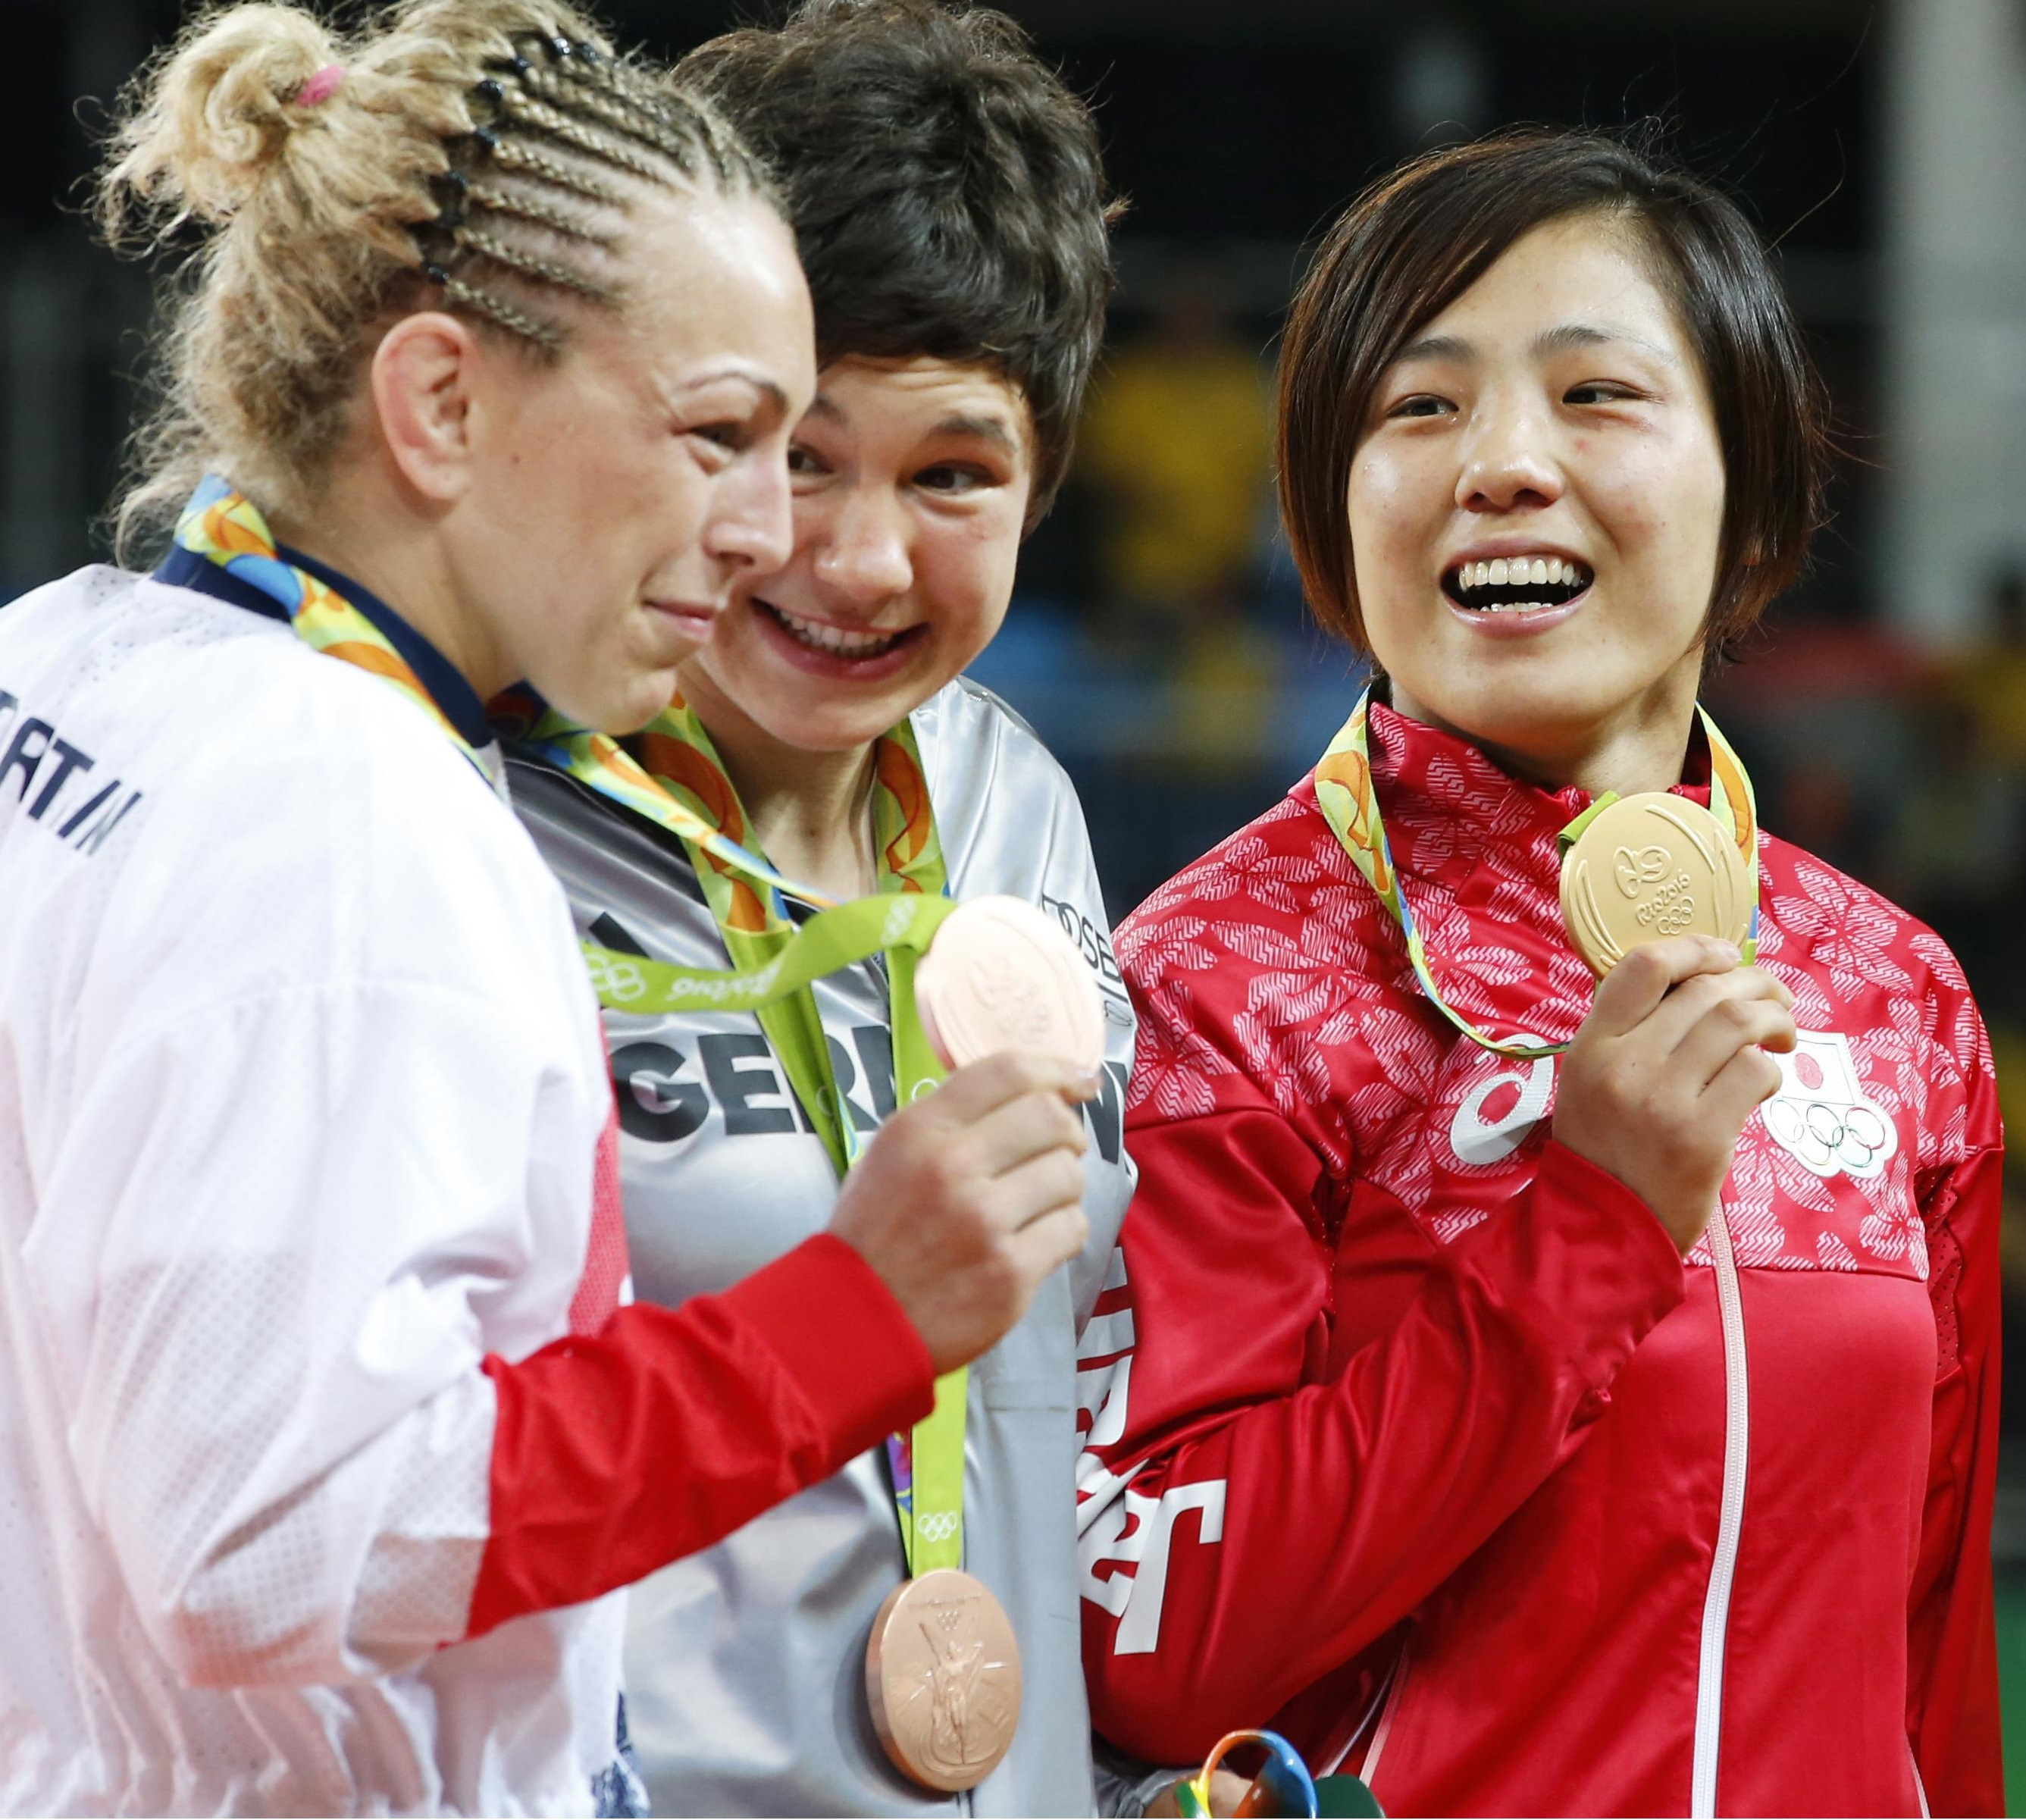 Haruka Tachimoto (center) poses with Yuri Alvear of Colombia (right) and Britain's Sally Conway in the award ceremony after earning the gold of women's 70-kg category of judo on Wednesday at the 2016 Rio de Janeiro Olympics. | REUTERS